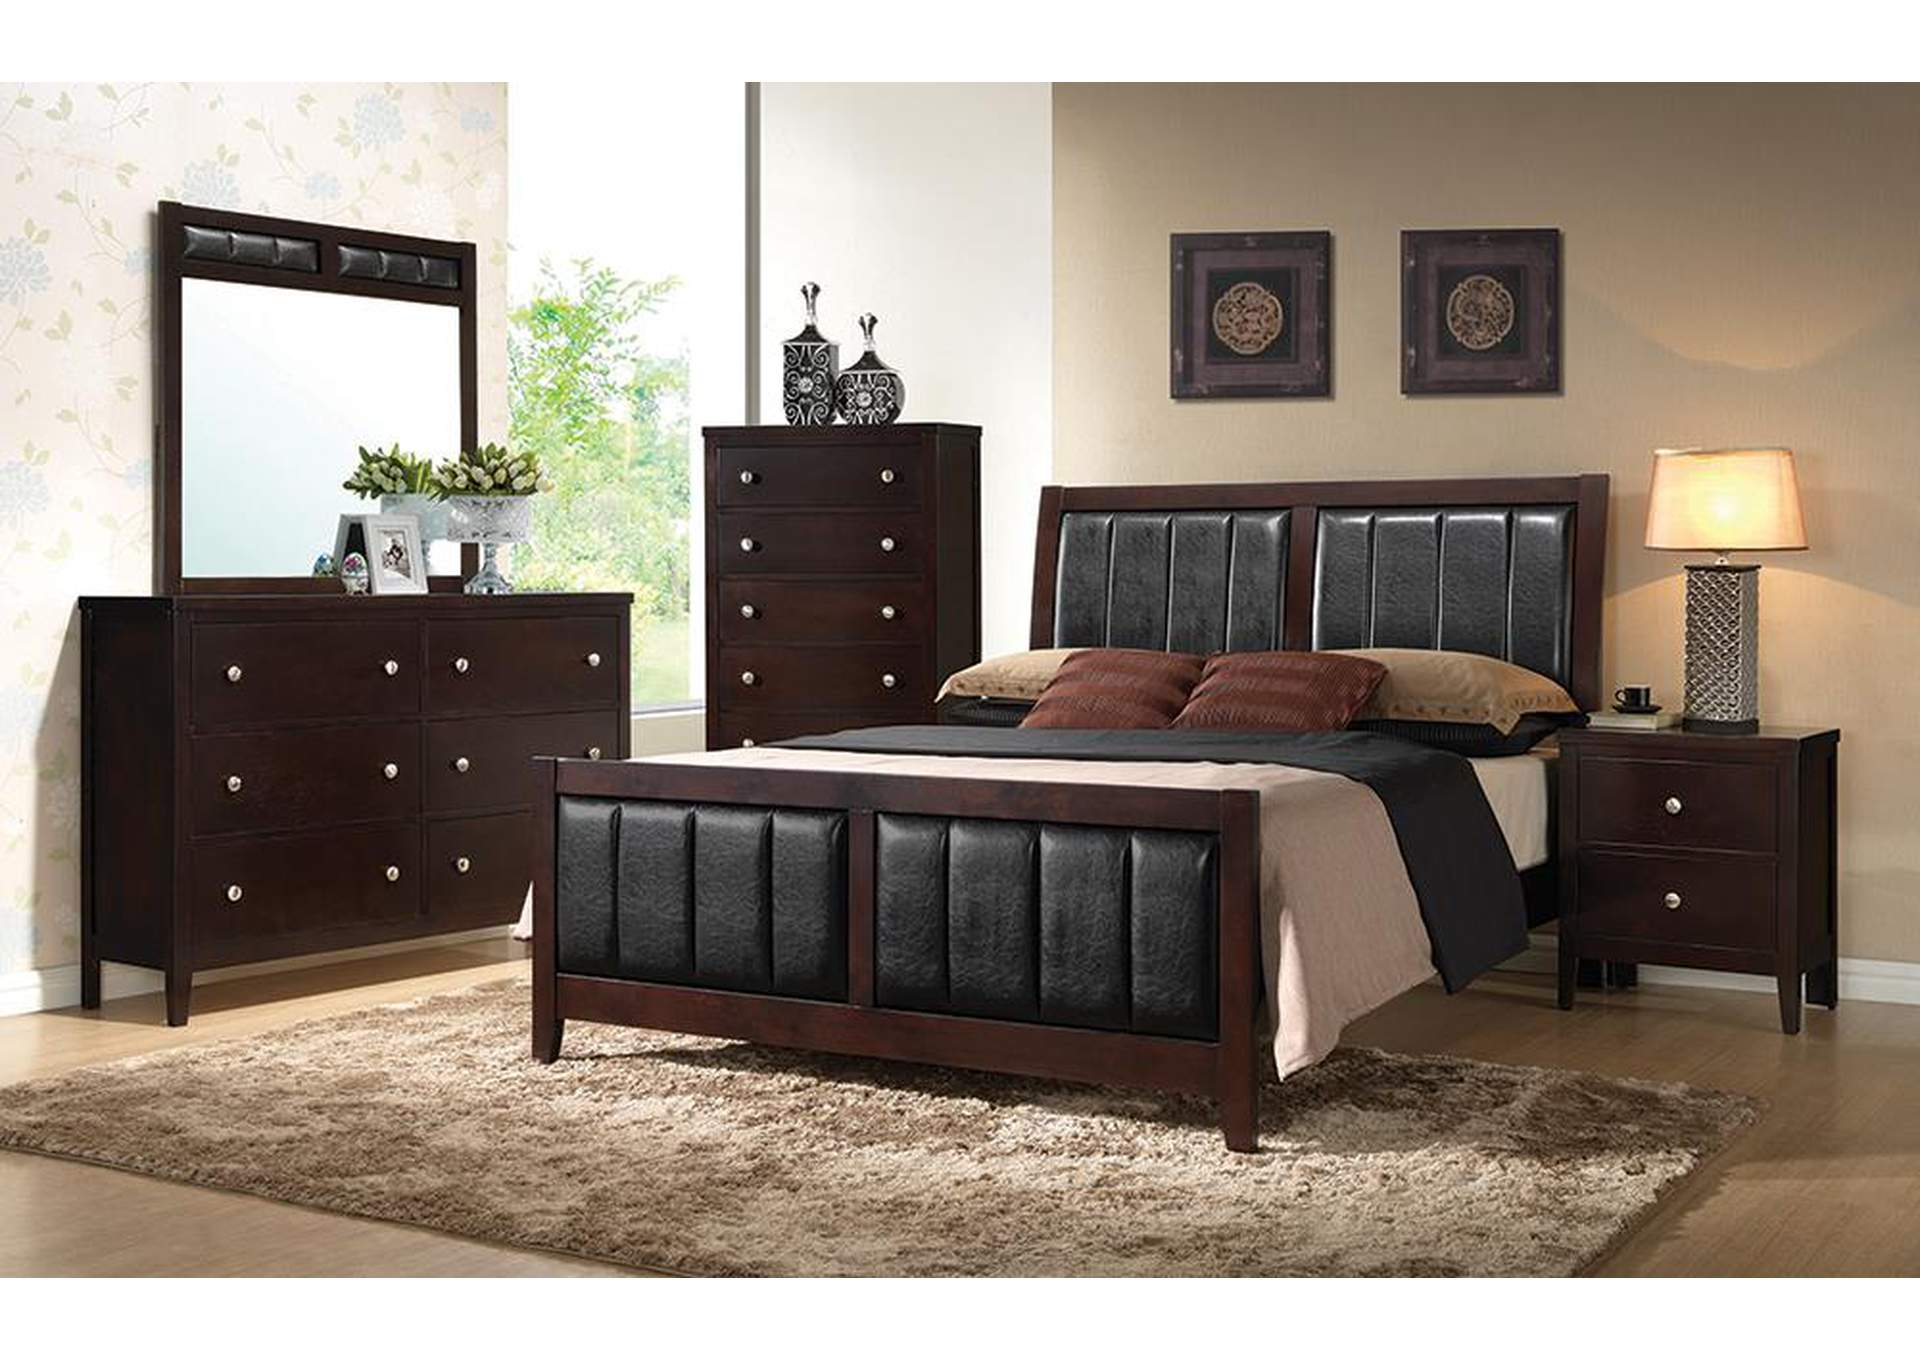 Solid Wood & Veneer Queen Bed,Coaster Furniture